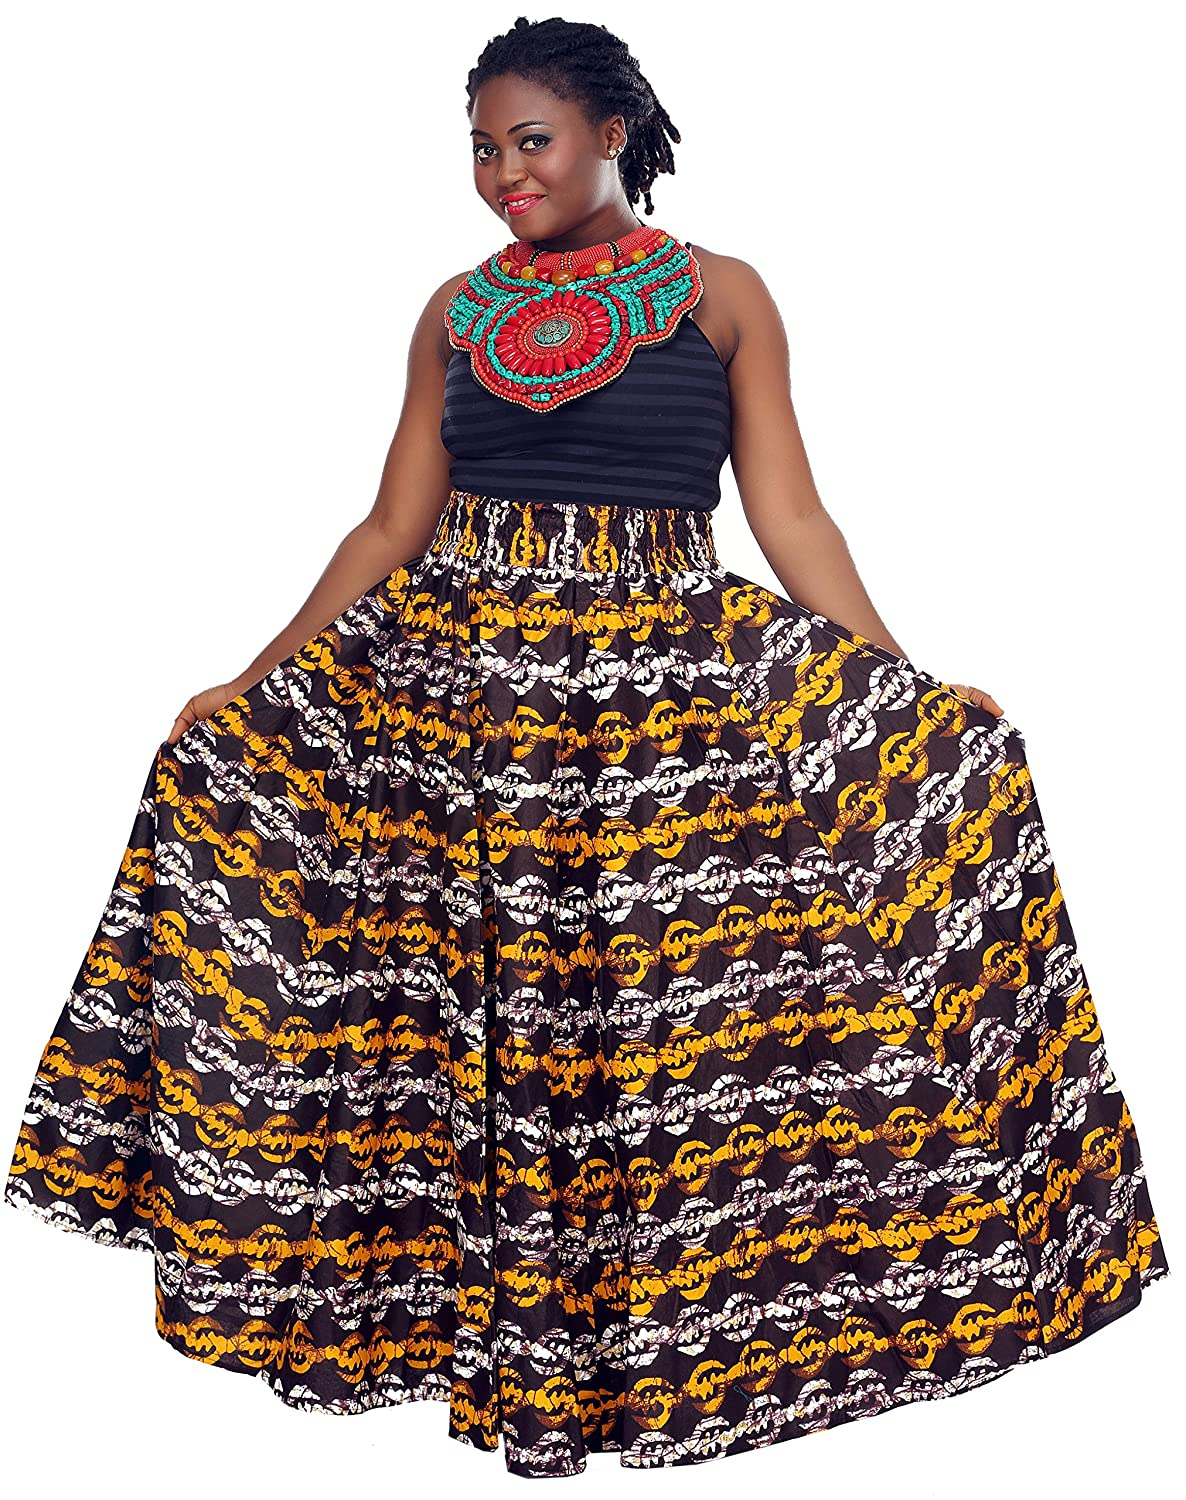 African Planet Women's Trees Cotton Wax Skirt Burundi Inspired Elastic Waist Maxi 2D-FI31-168